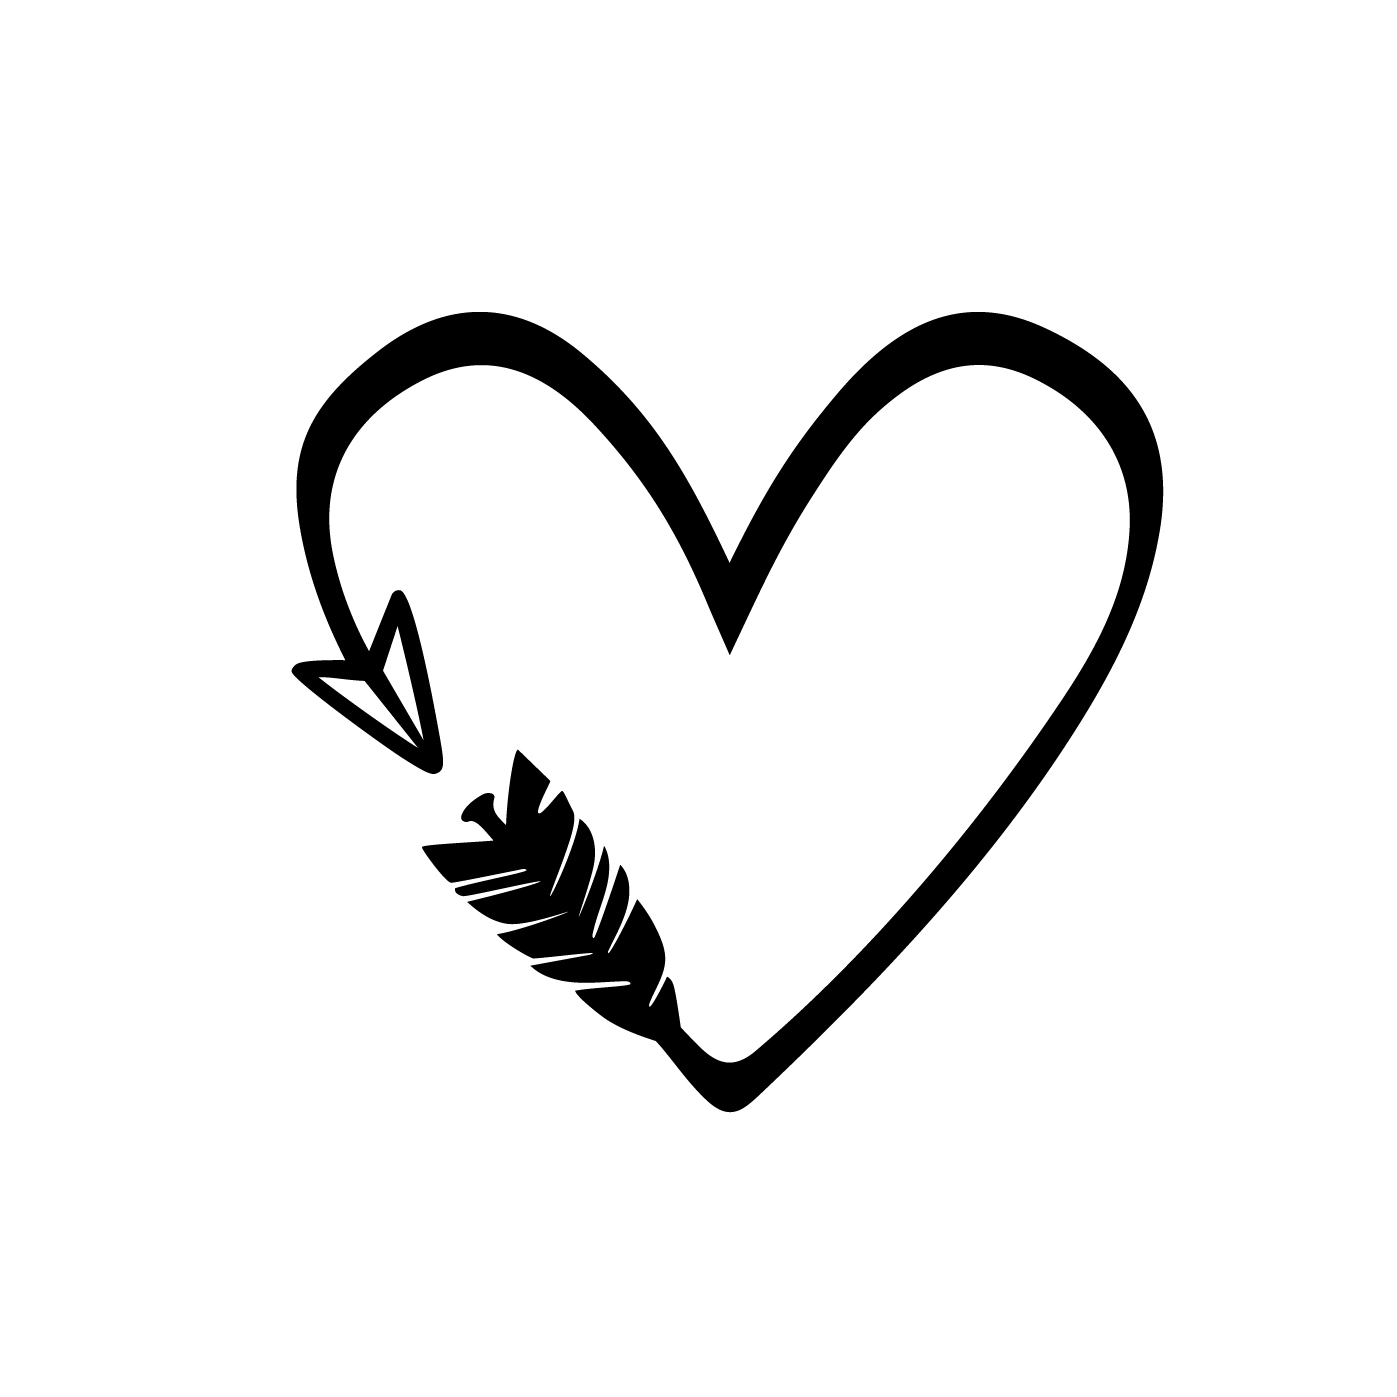 Heart Arrow Love Graphics SVG Dxf EPS Png Cdr by